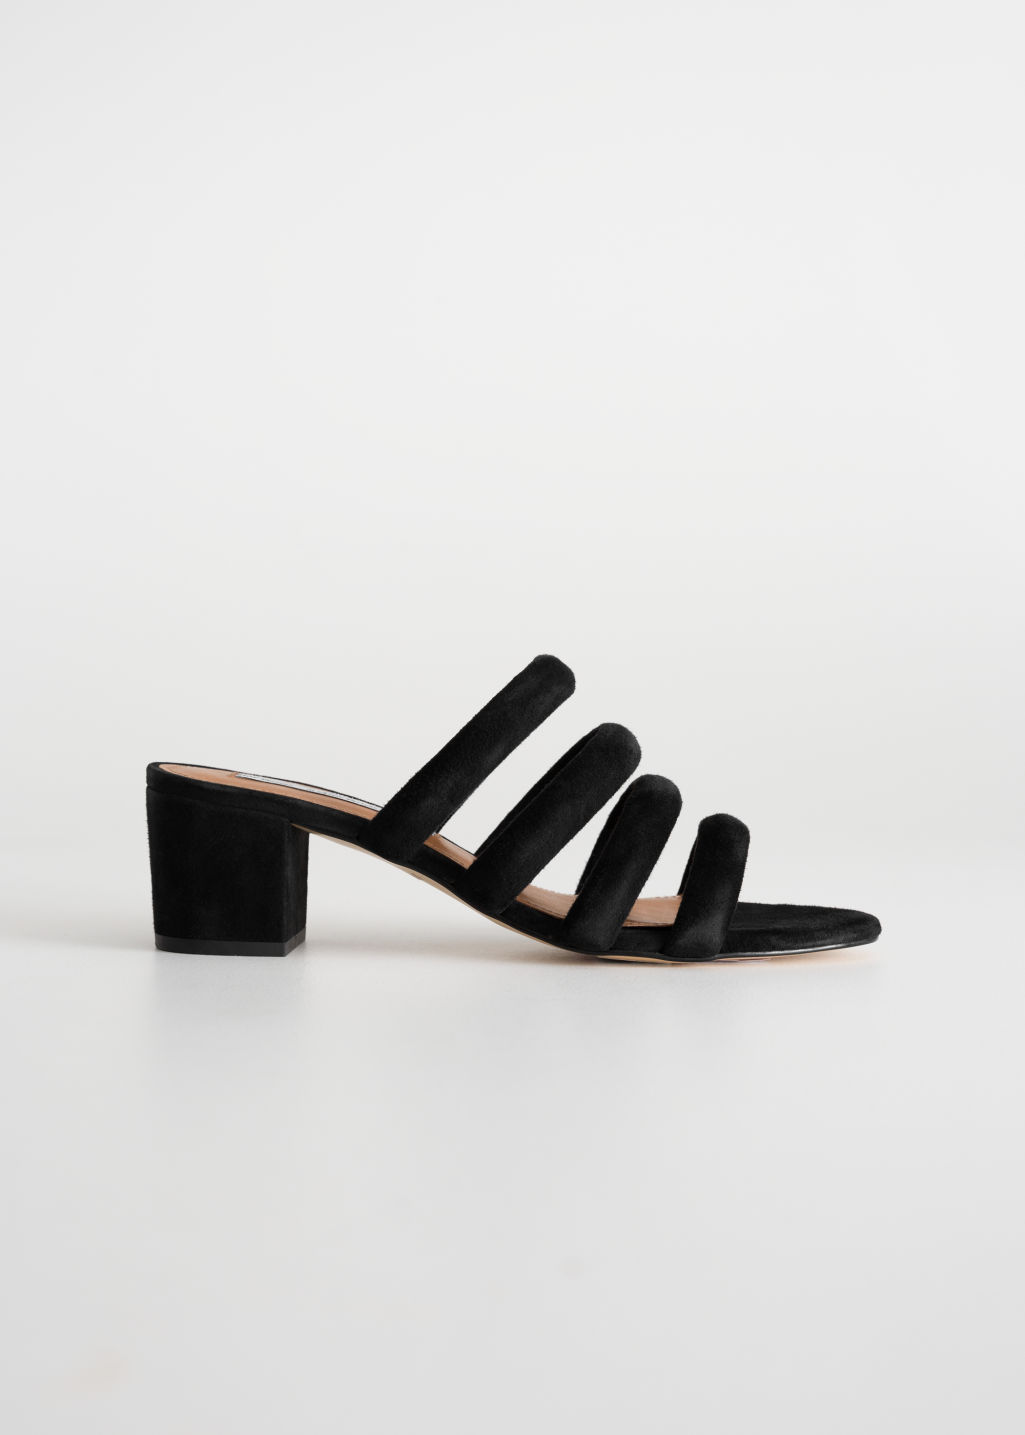 & OTHER STORIES Heeled Suede Four Strap Sandal dCpxhto